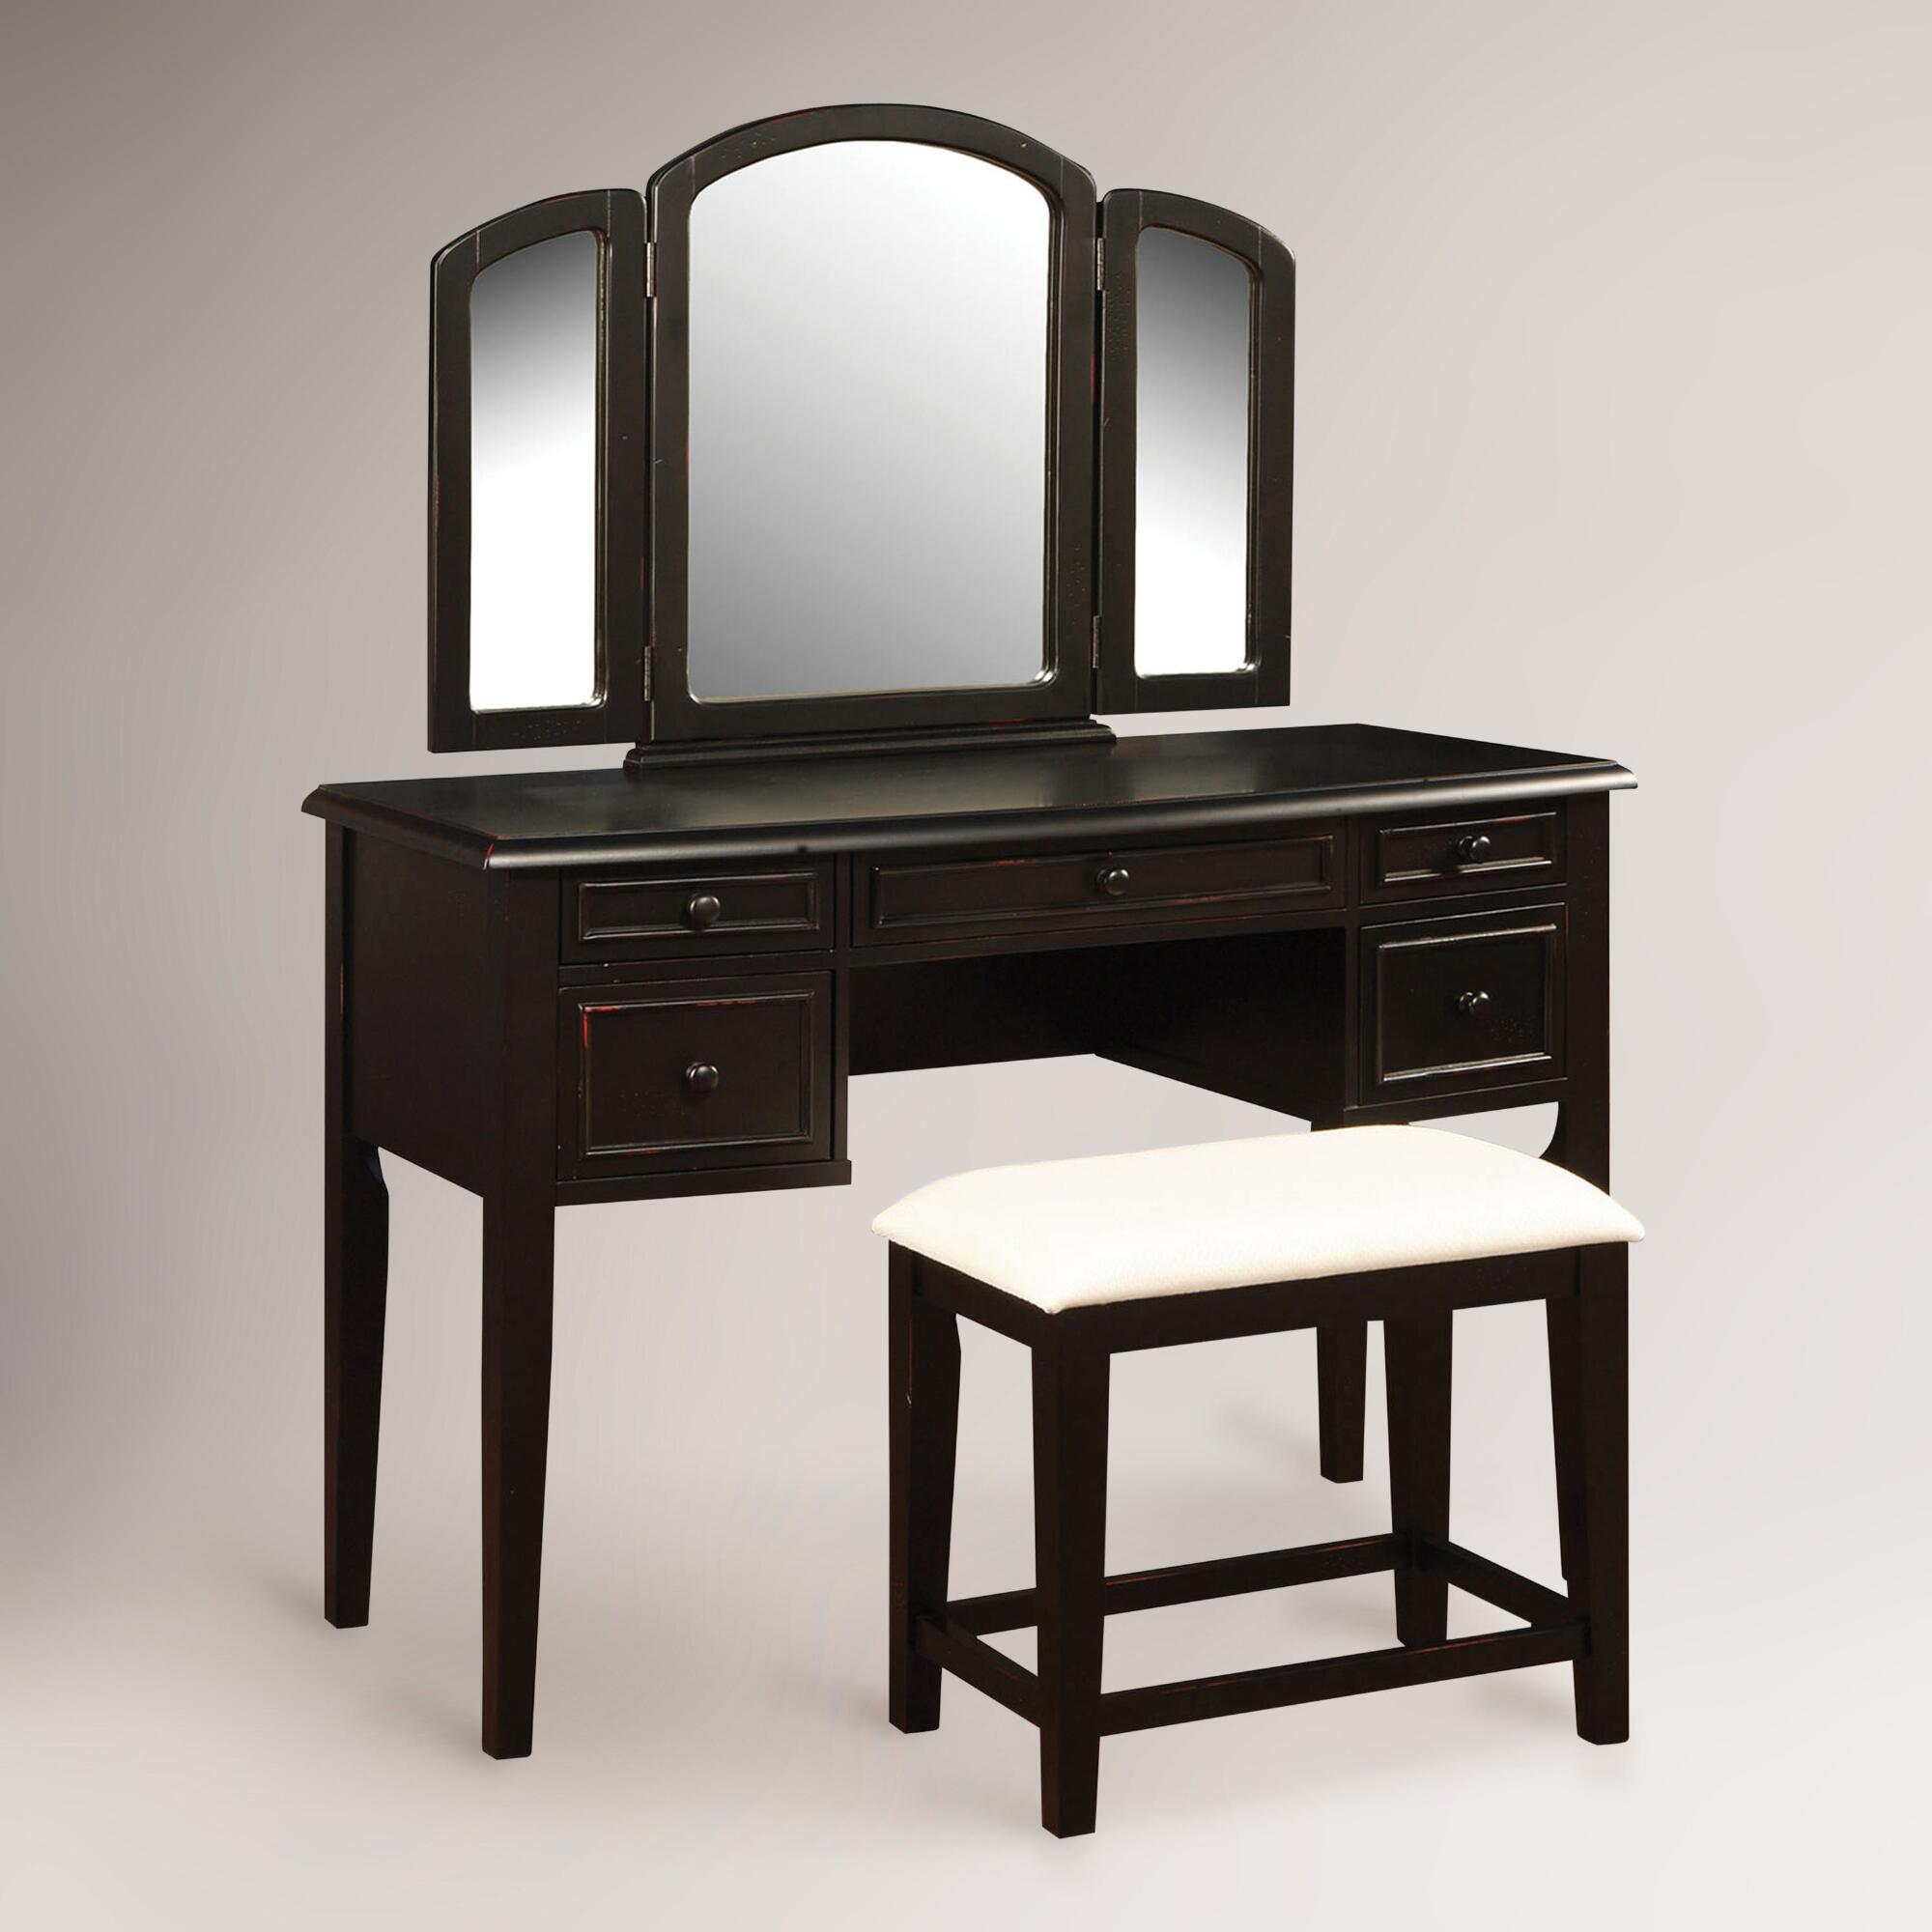 Montclair vanity mirror bench world market for Mirror vanity